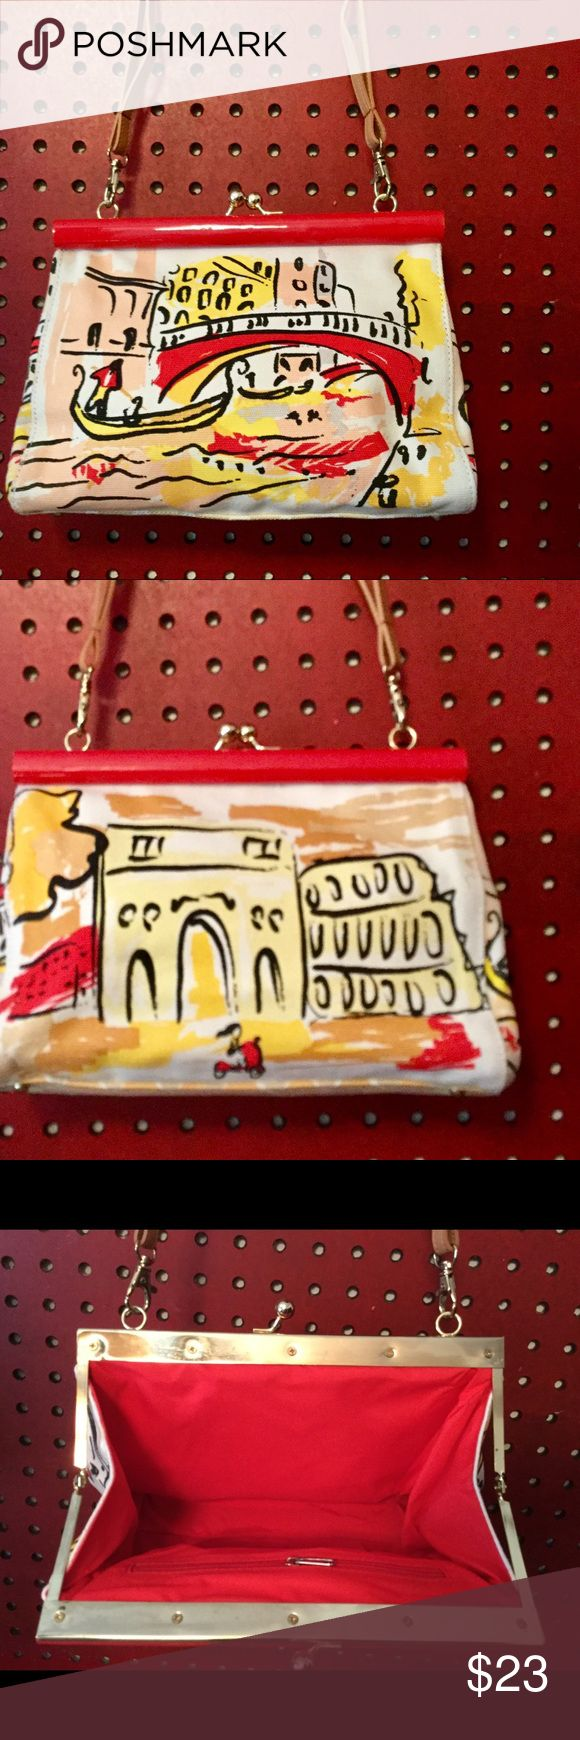 Hand painted canvas bag Vintage style hand painted canvas clutch bag with shoulder straps and snap closure. Retro scene of Rome on front and back. Adorable! NWOT Bags Mini Bags